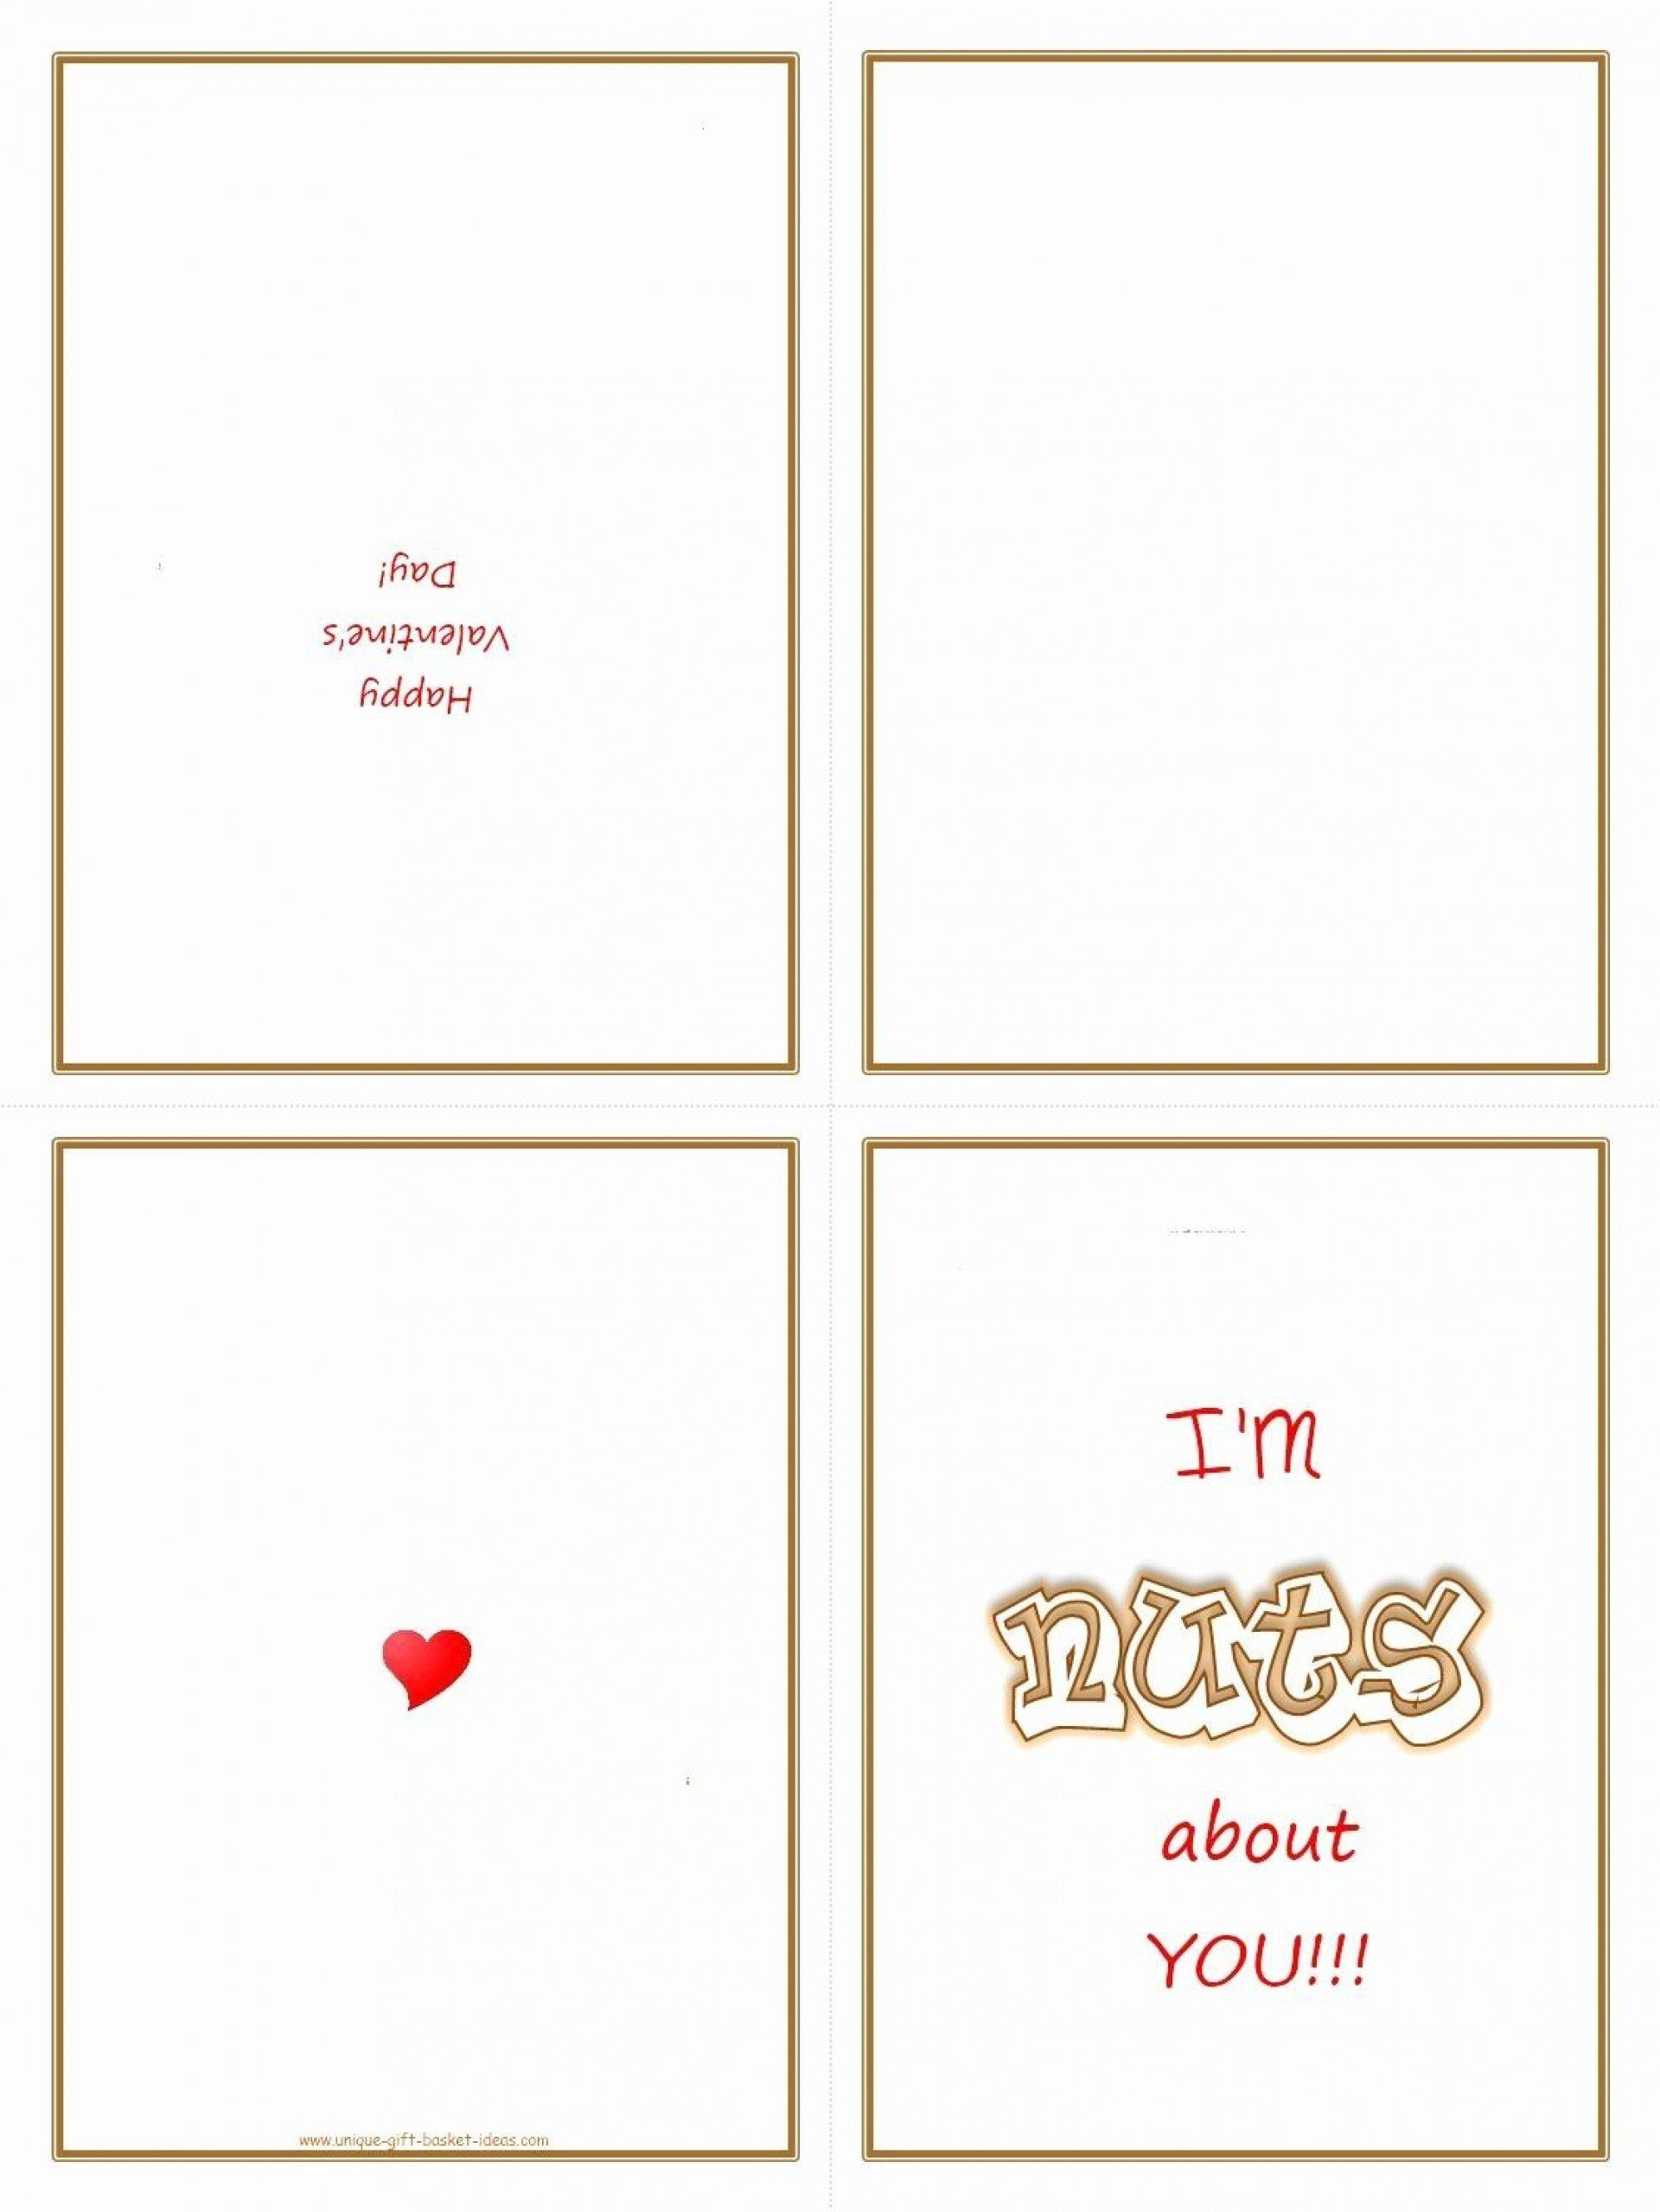 010 Stupendou Birthday Card Template For Word 2010 Concept  Greeting MicrosoftFull